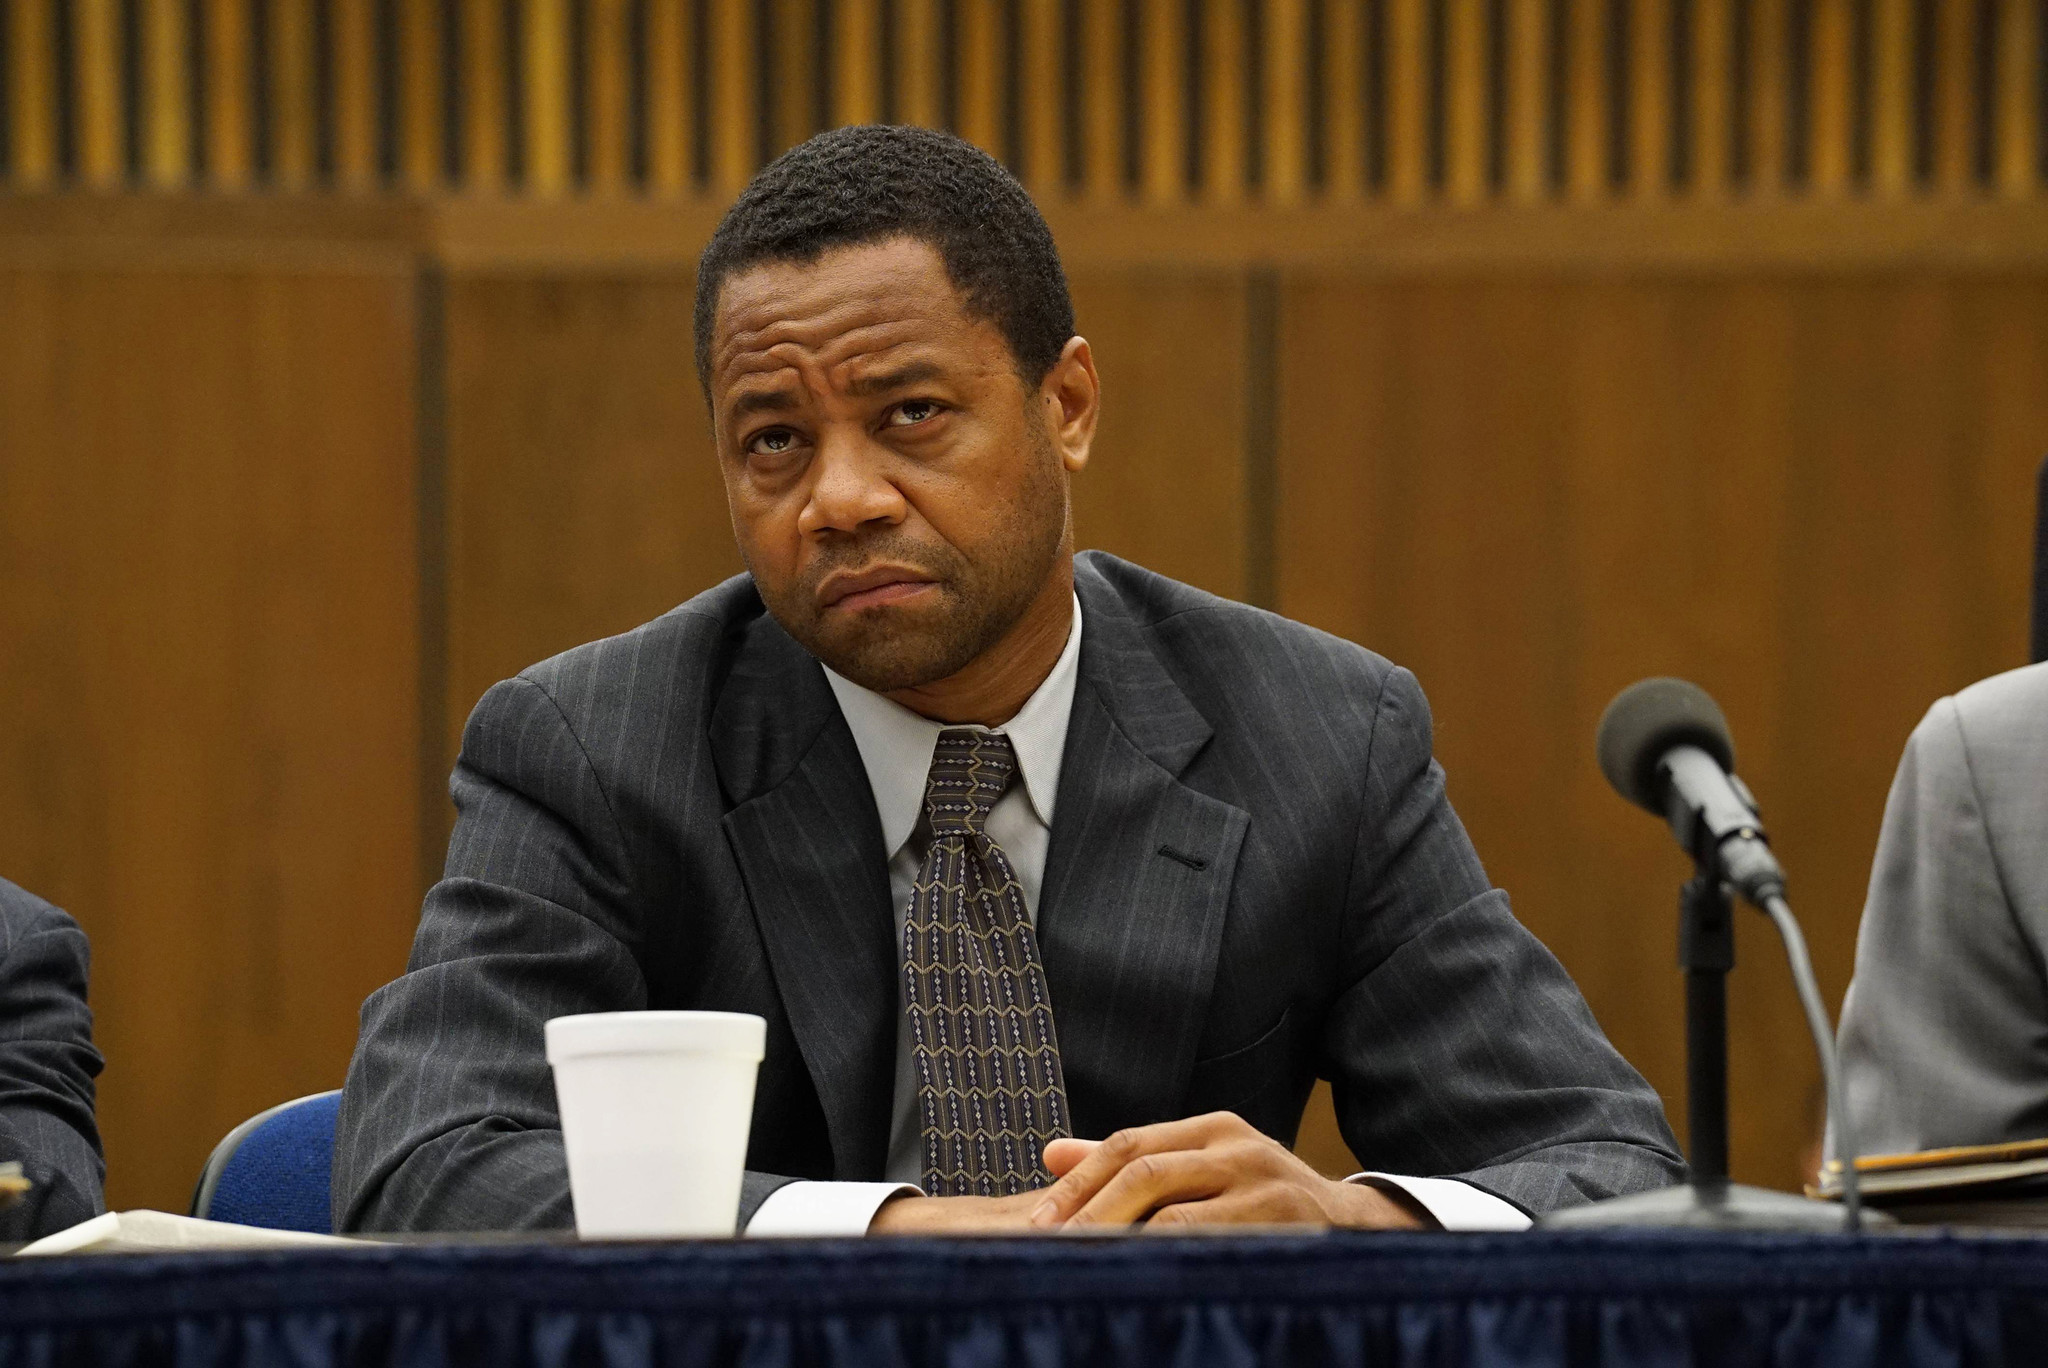 'The People vs. O.J. Simpson' makes fact fiction and finds something profound in the process